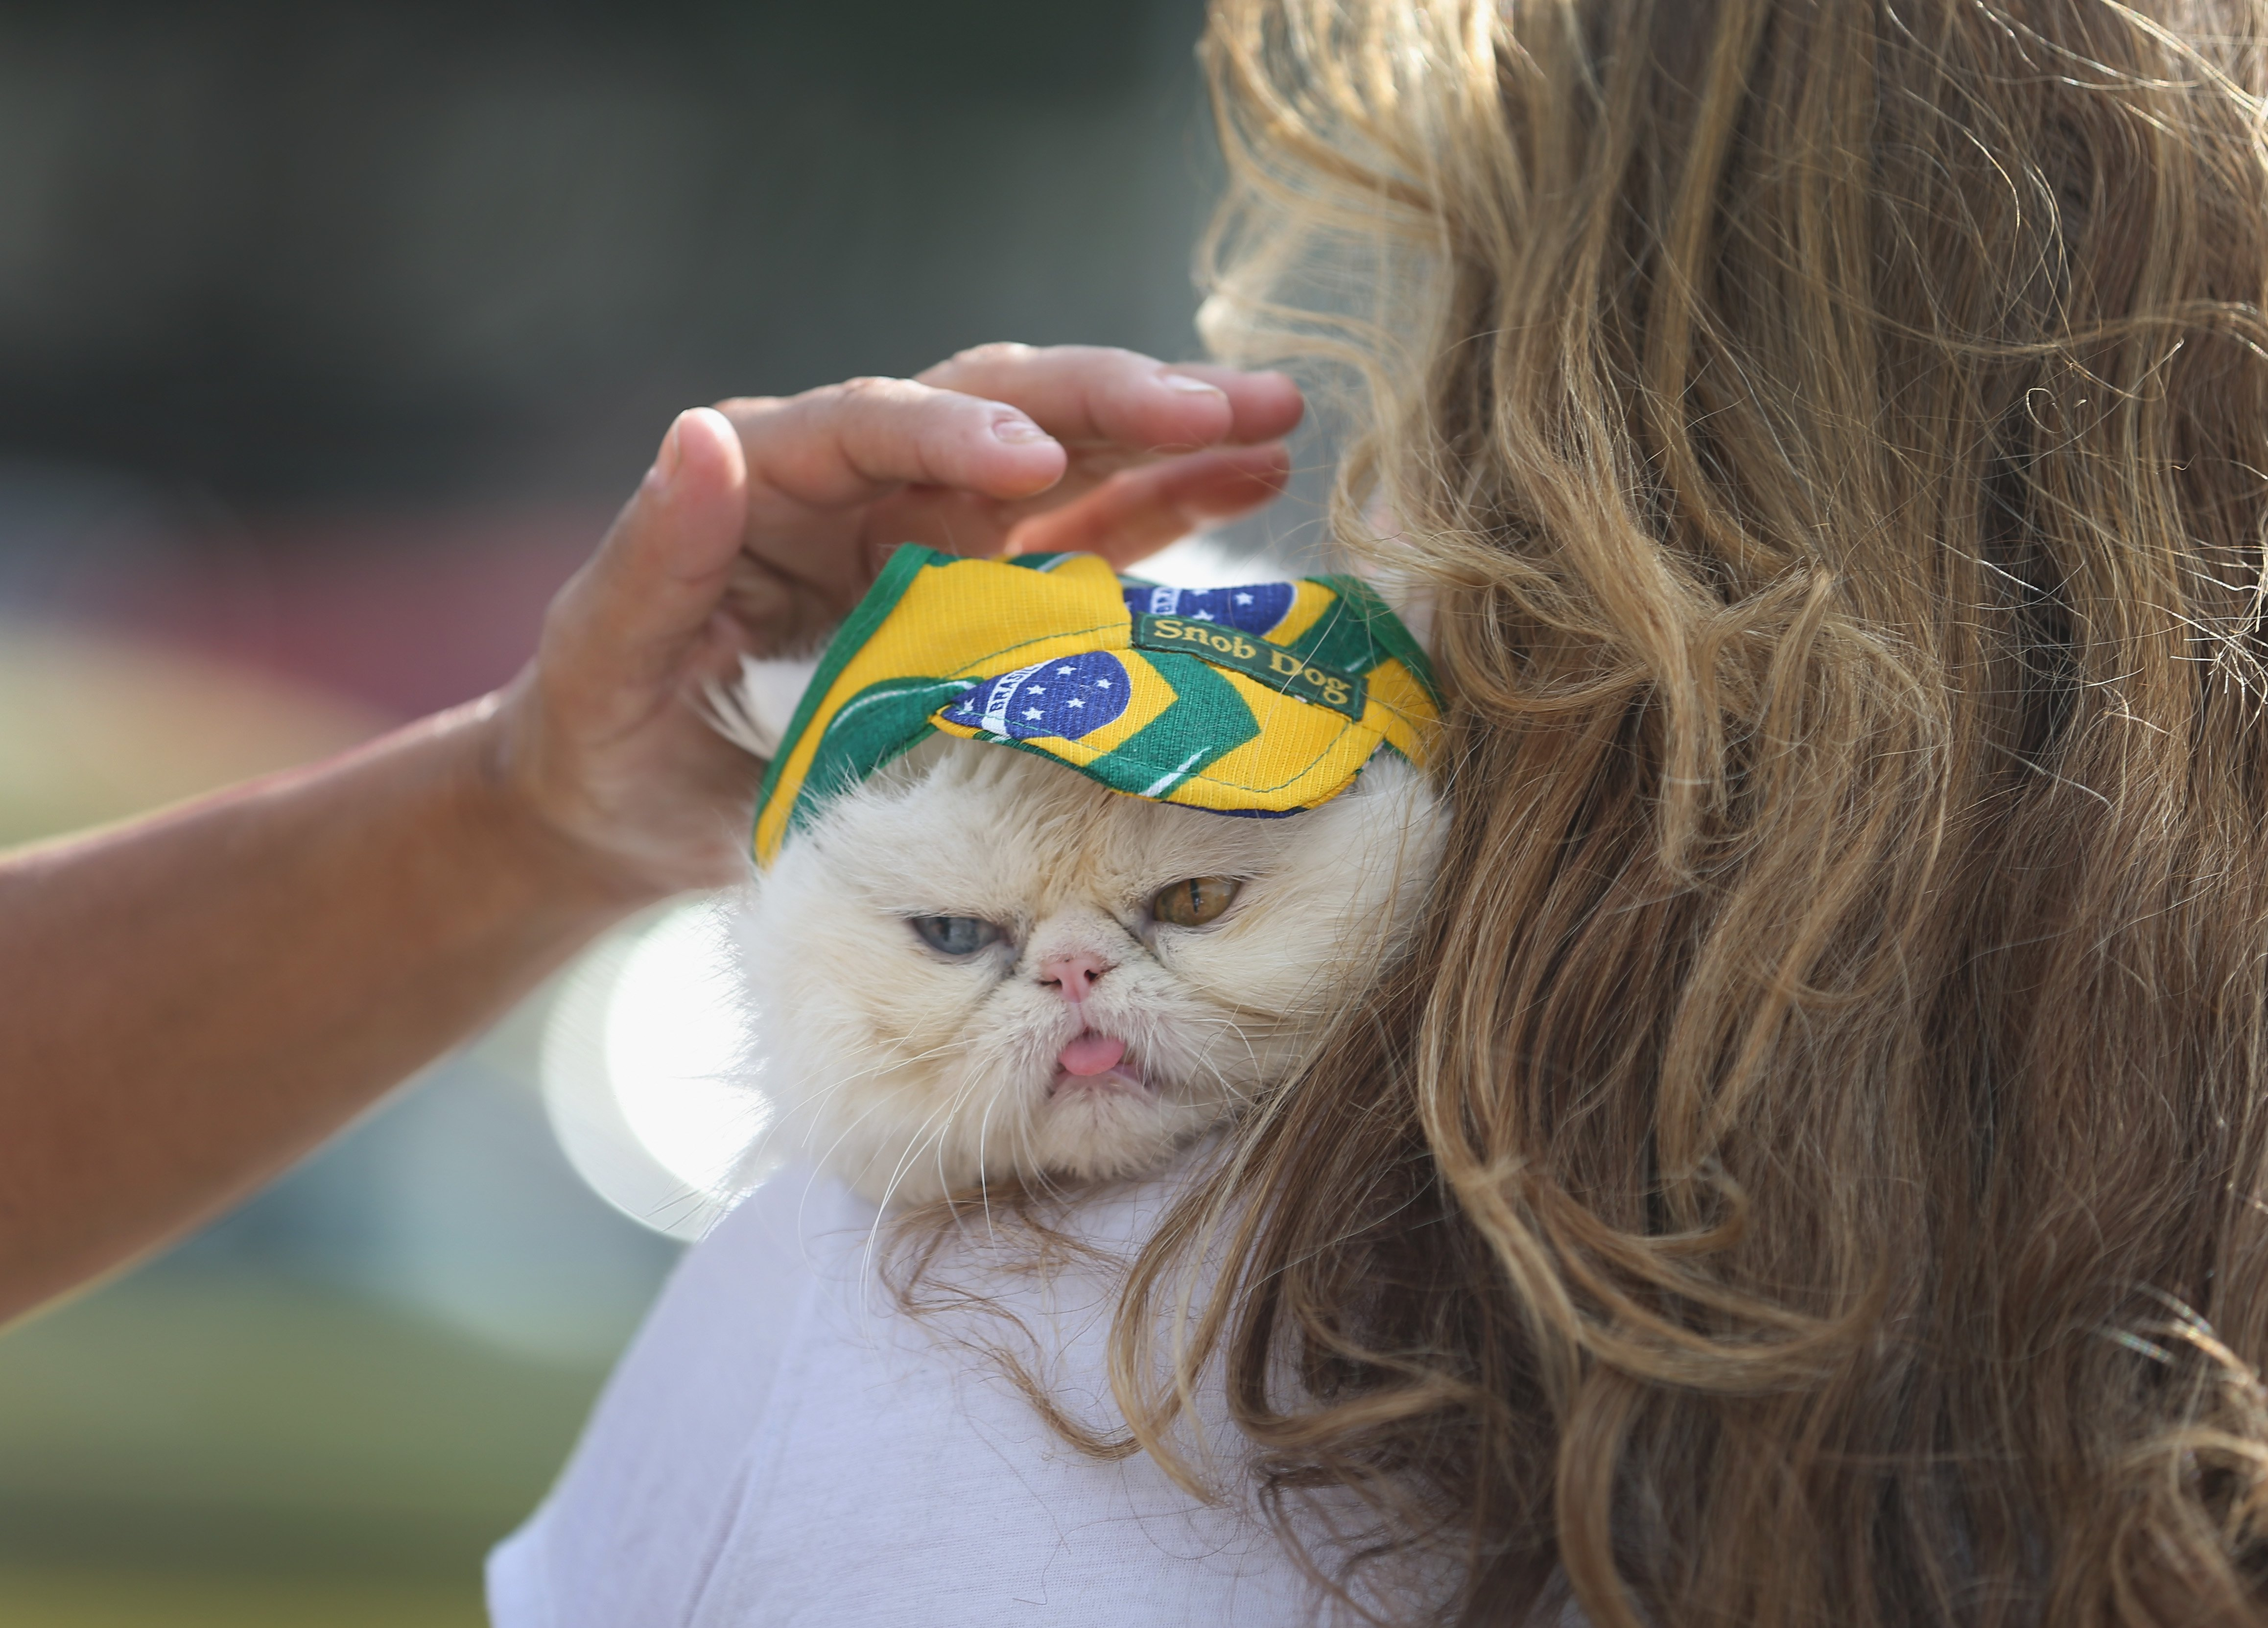 Leila de Matos holds her cat, Yandu, as it wears a Brazlian flag hat as they visit Copacabana beach while waiting for the start of the World Cup tournament on June 11, 2014 in Rio de Janeiro.